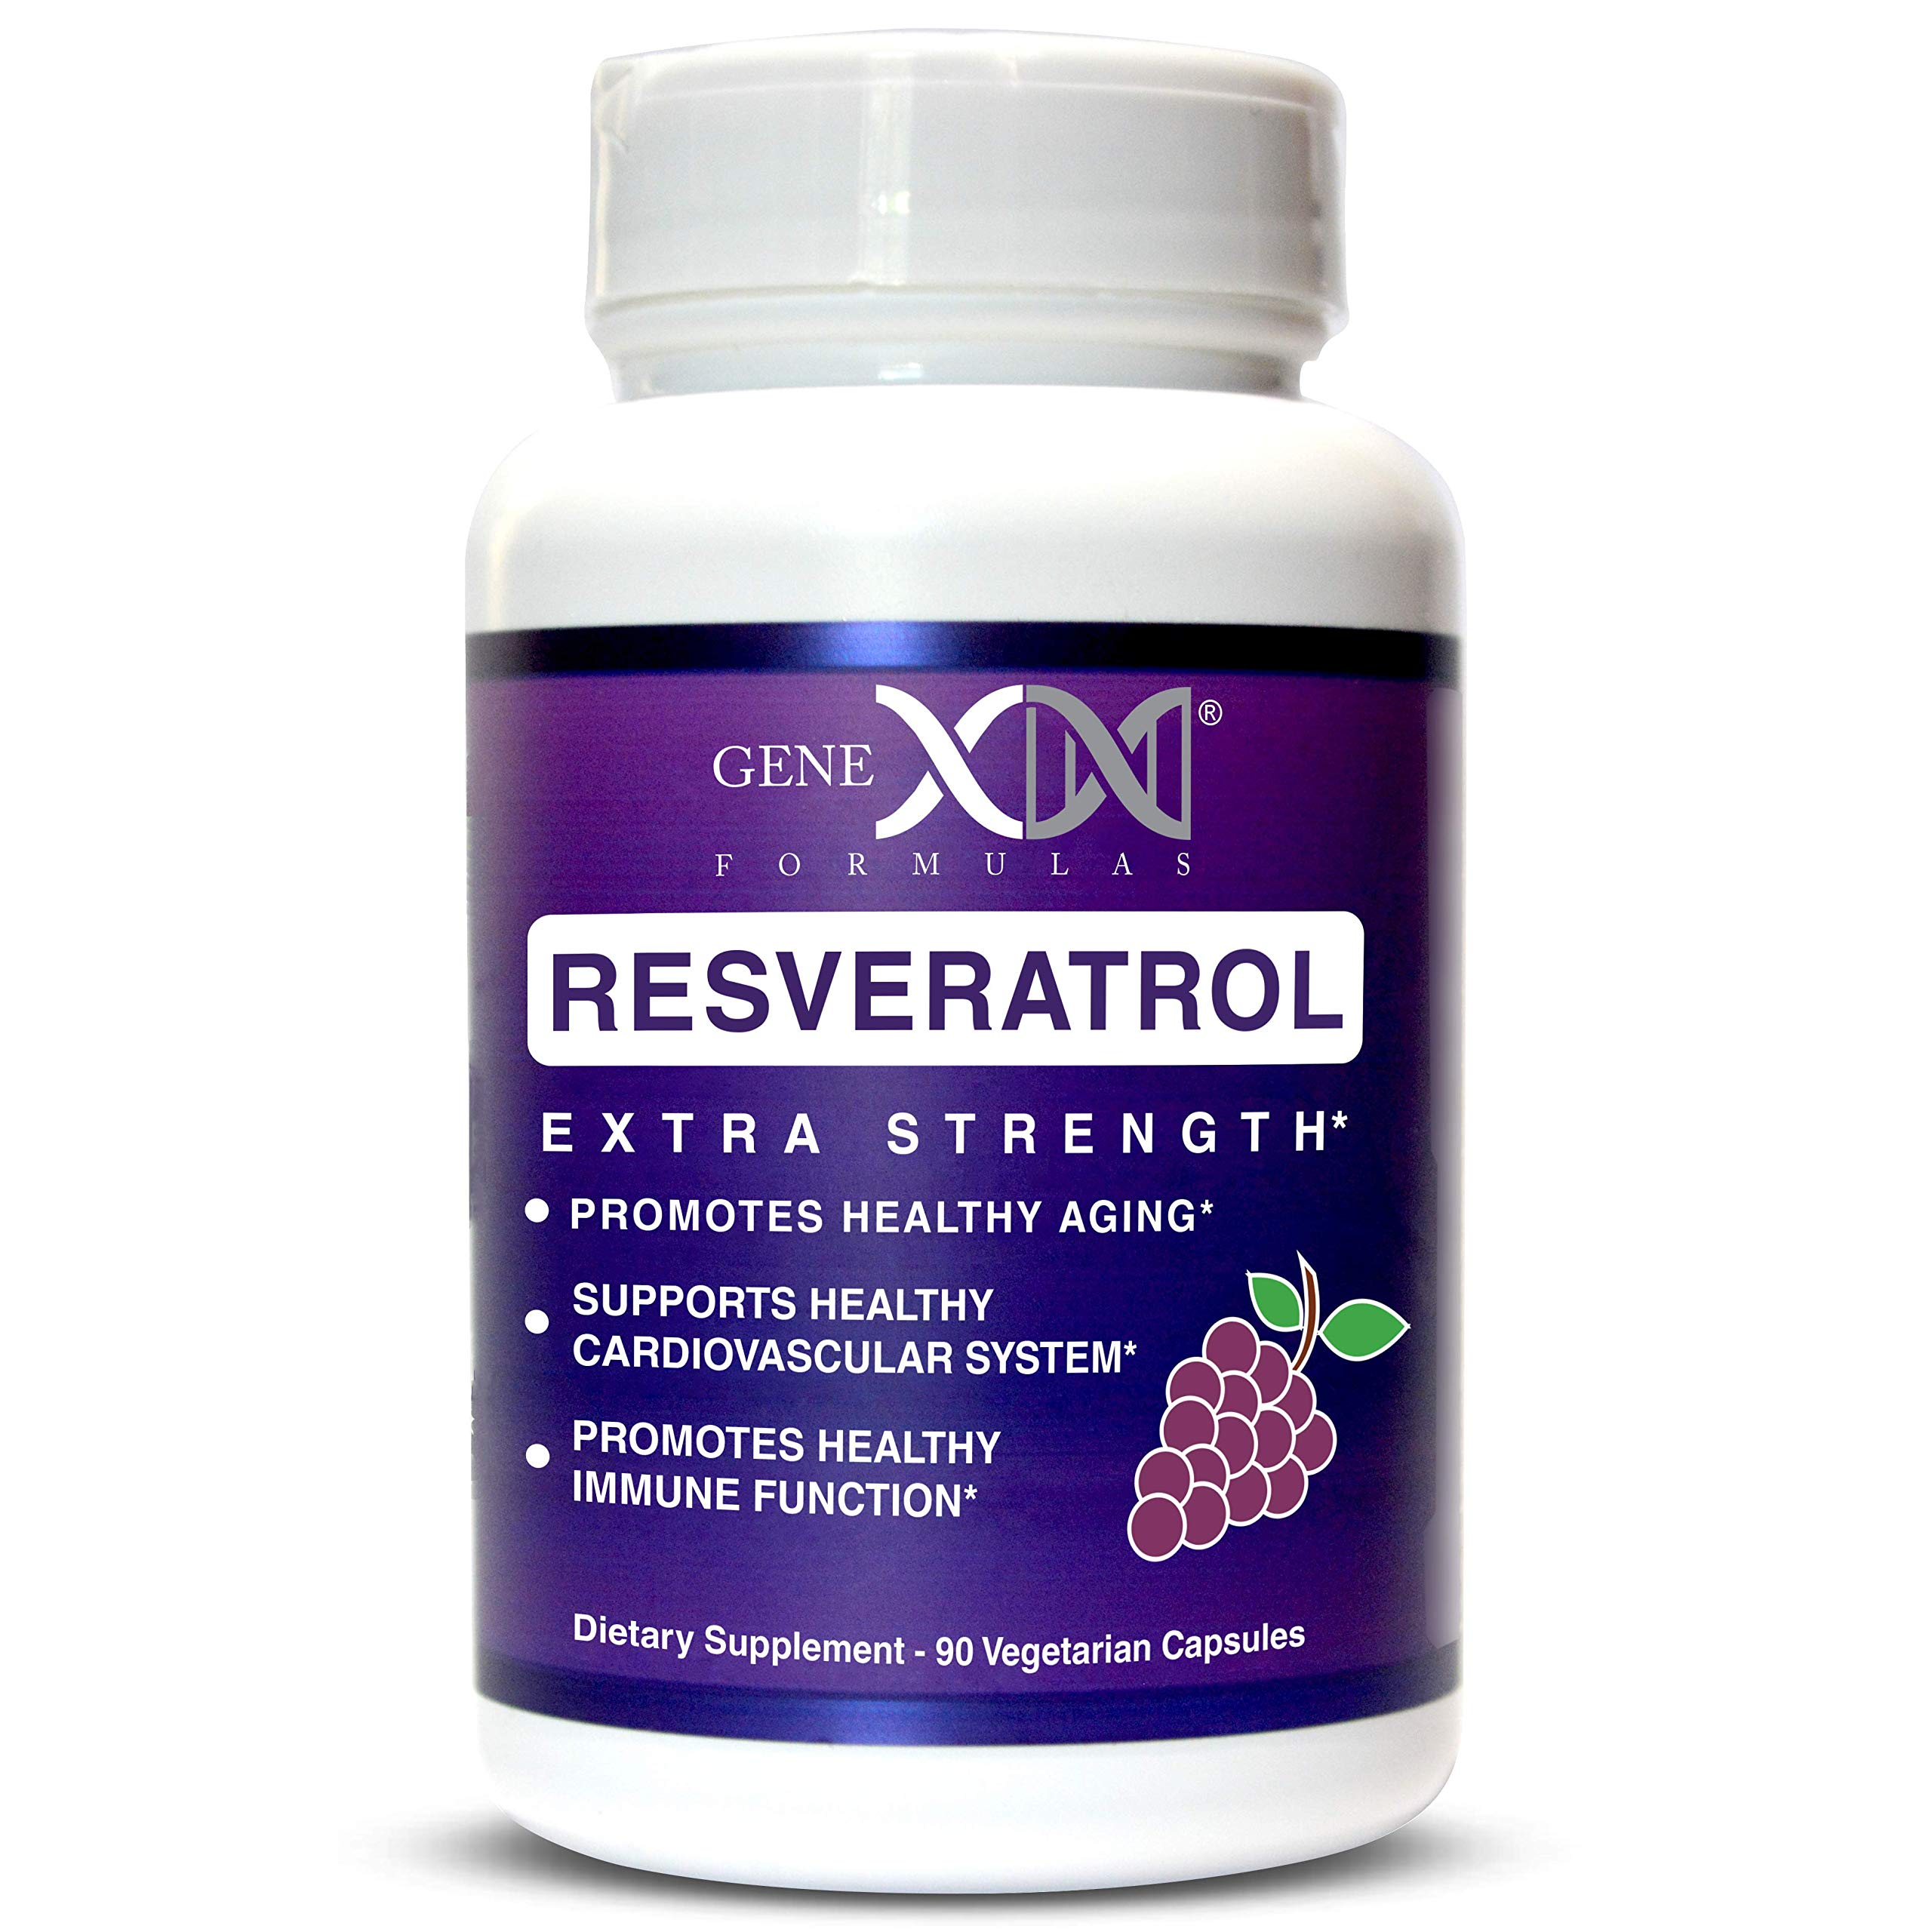 Genex Resveratrol 1500mg Per Serving- Max Strength - Antioxidant Supplement Extract | Trans-Resveratrol Works Well with NMN Nicotinamide Mononucleotide Made in a GMP Facility 30-Day Supply